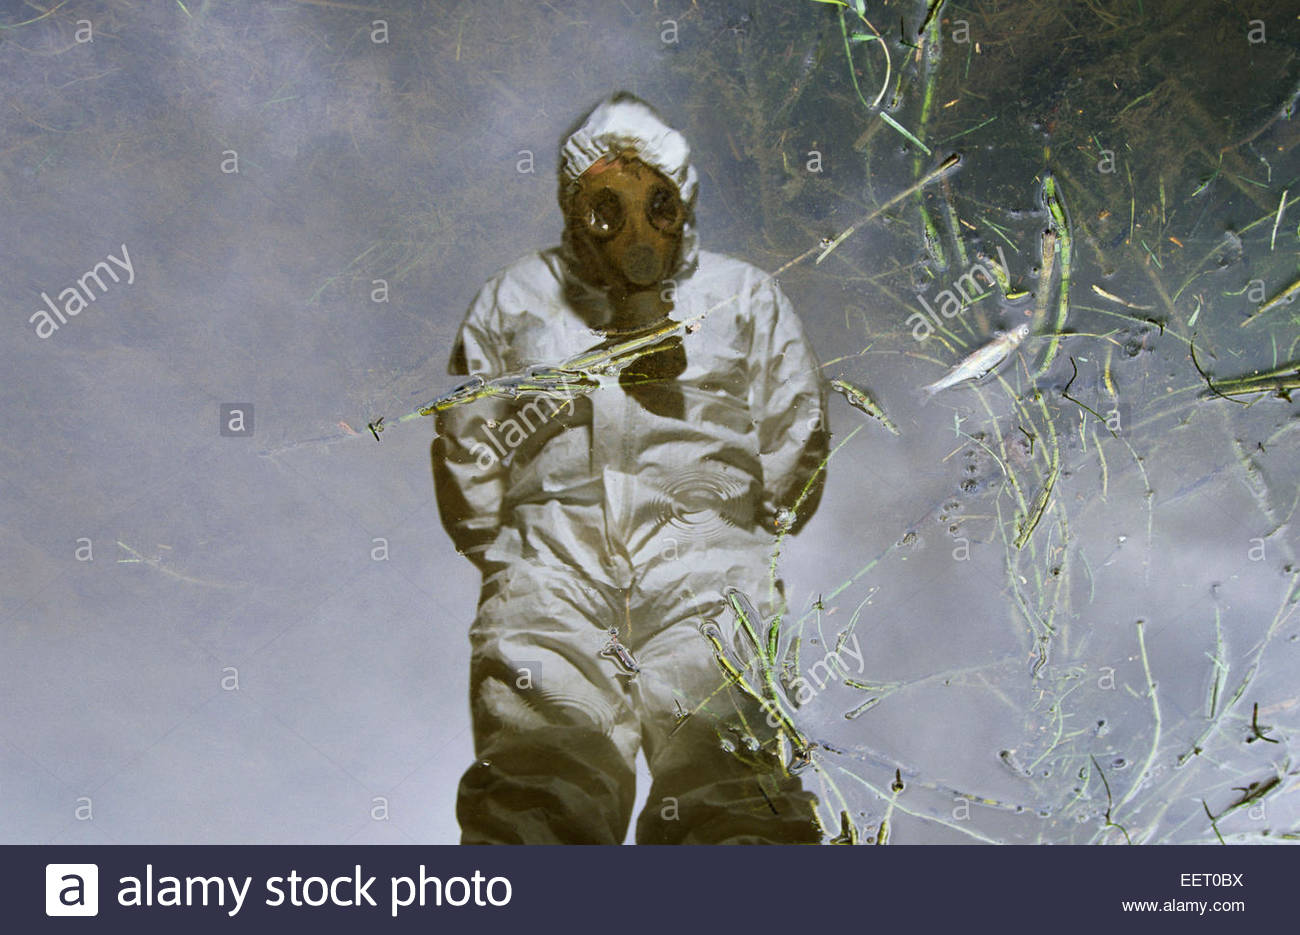 Pollution in river - Stock Image